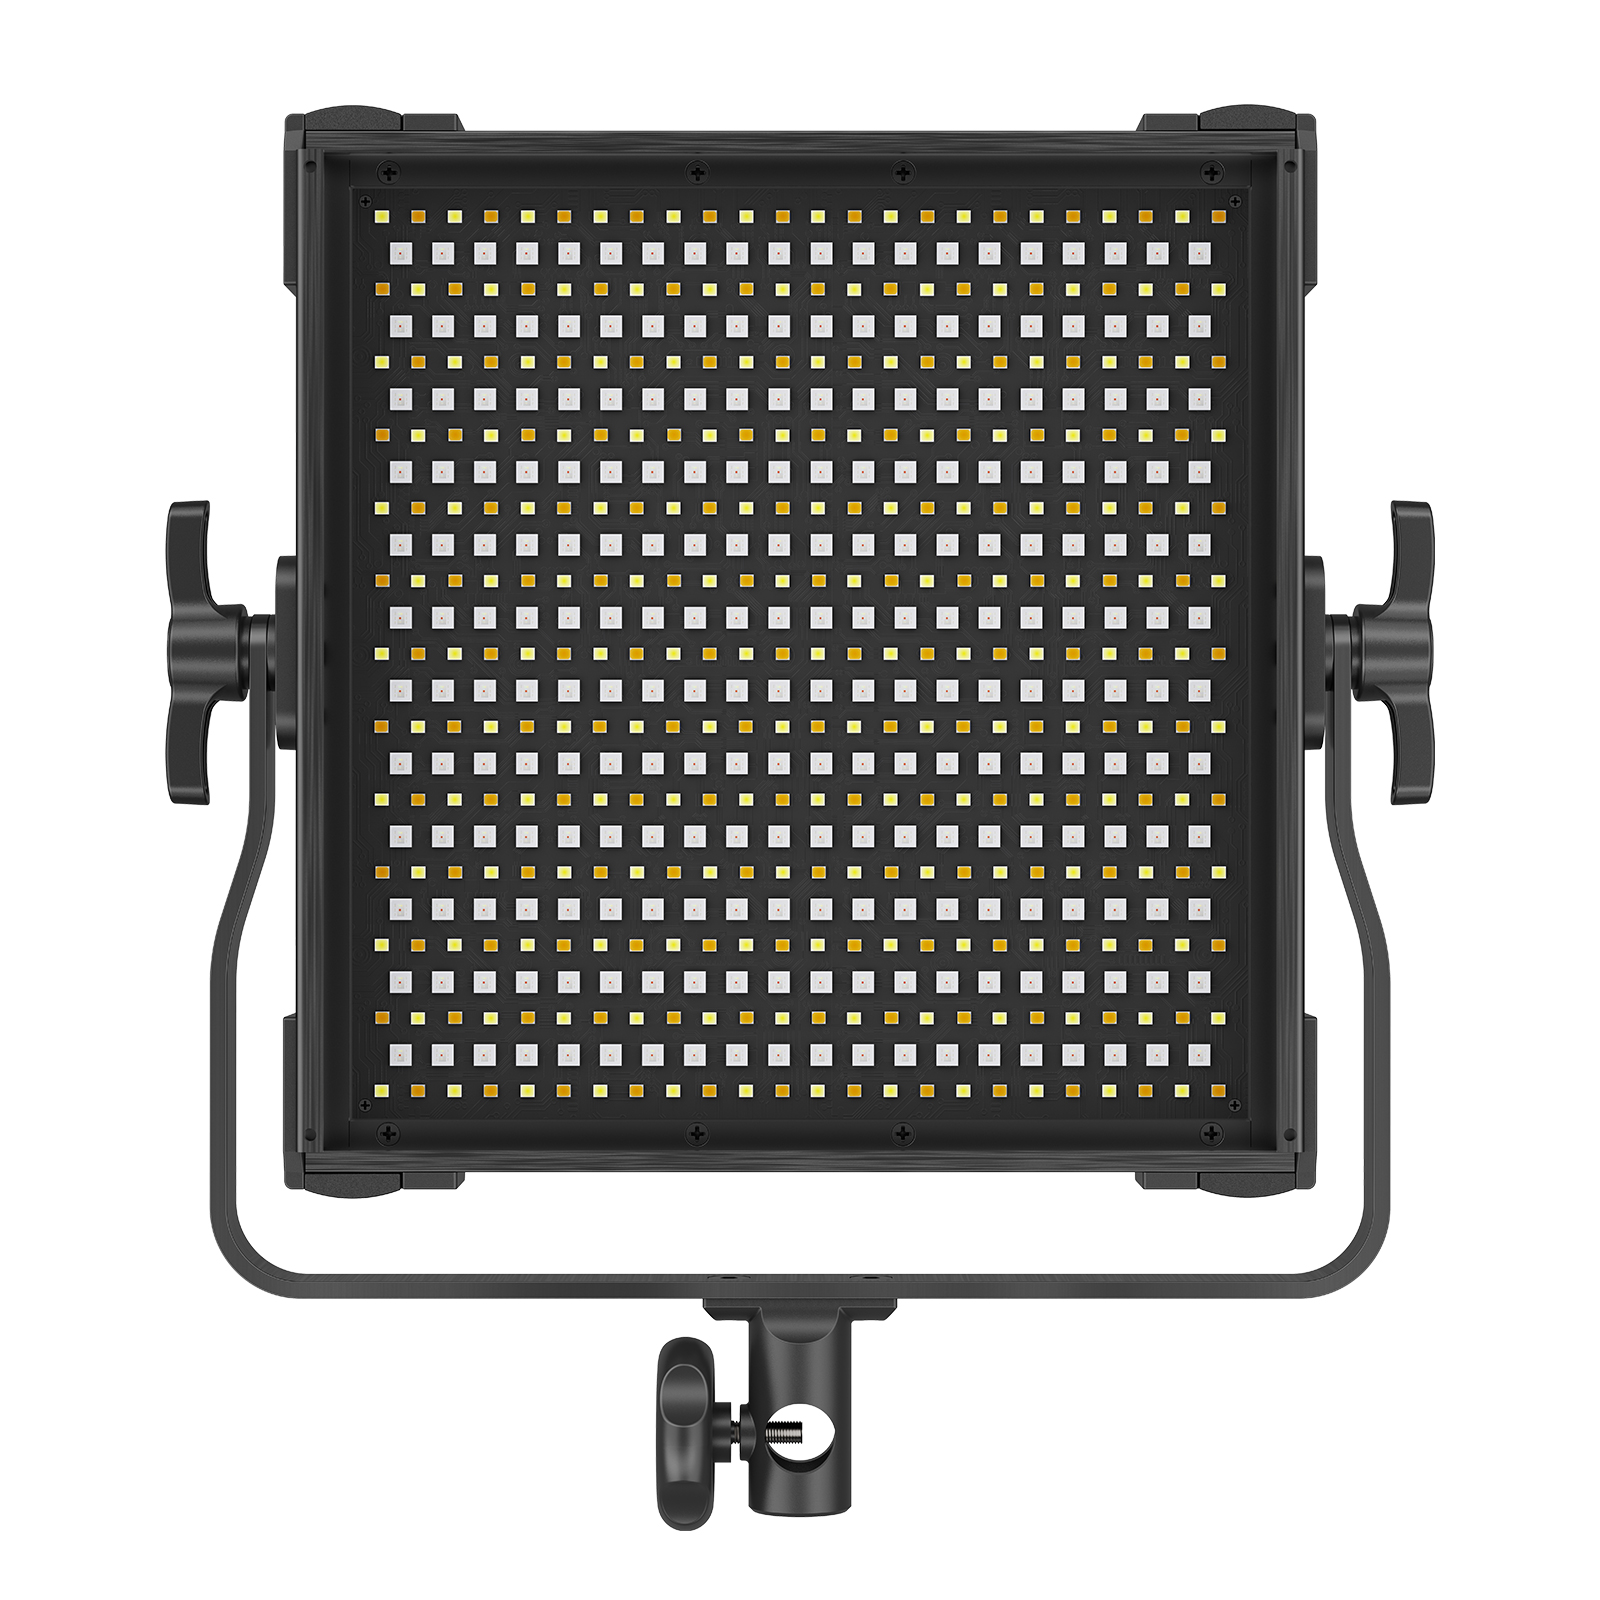 Pixel P45 RGB Panel Light,360°C Full Color Gamut,Ultra-wide Color Temperature,Full Color Saturation,Lightweight Portable,Intelligent Effect.